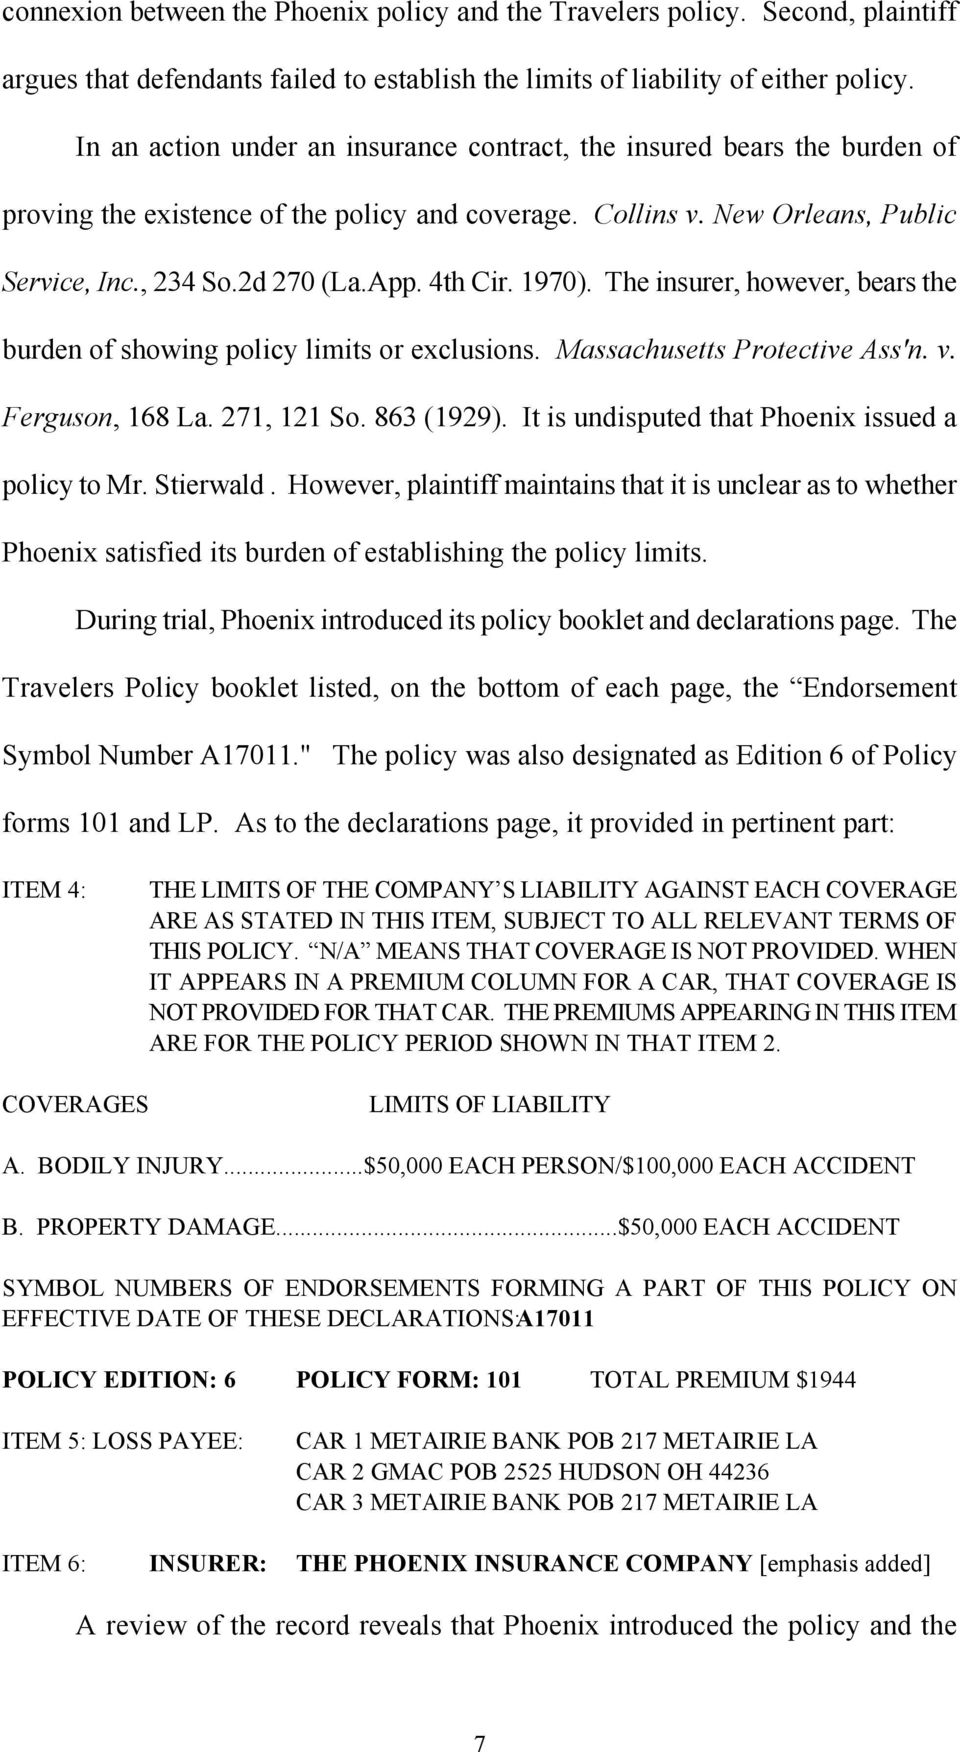 4th Cir. 1970). The insurer, however, bears the burden of showing policy limits or exclusions. Massachusetts Protective Ass'n. v. Ferguson, 168 La. 271, 121 So. 863 (1929).